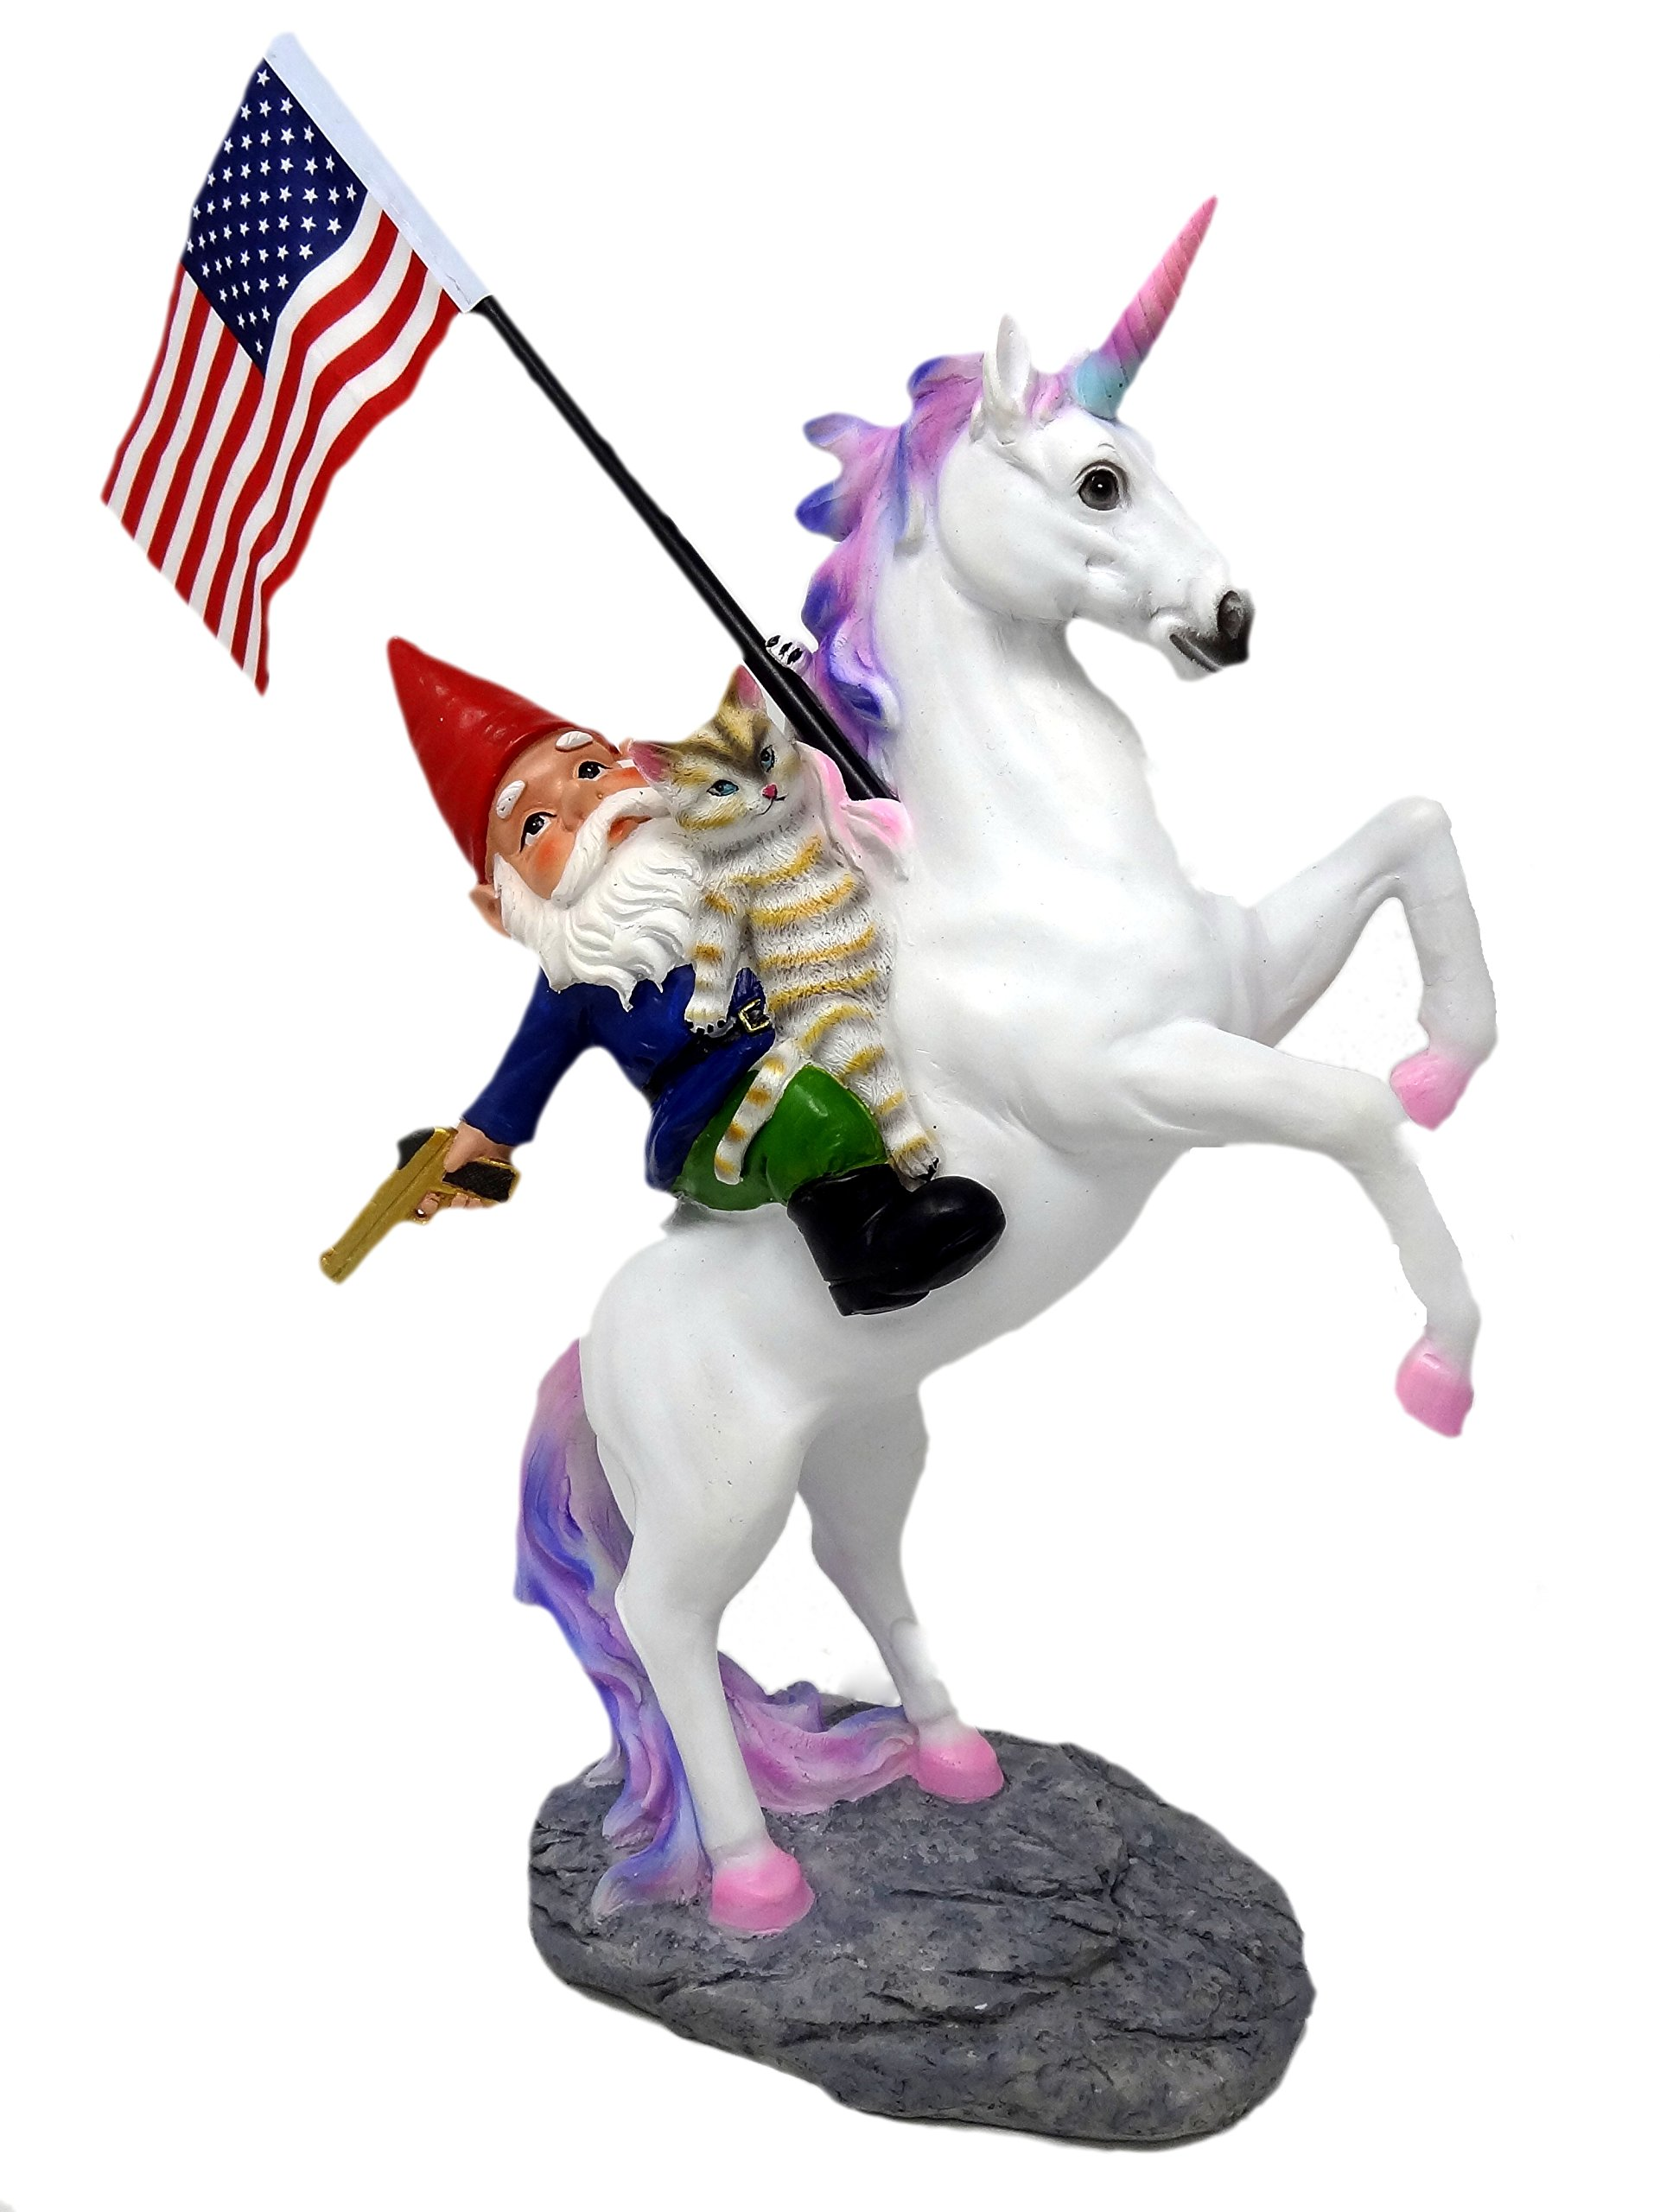 Funny Guy Mugs Garden Gnome Statue - The Ultimate Trio: Cat, Gnome & Unicorn Statue - Indoor/Outdoor Garden Gnome Sculpture for Patio, Yard or Lawn by Funny Guy Mugs